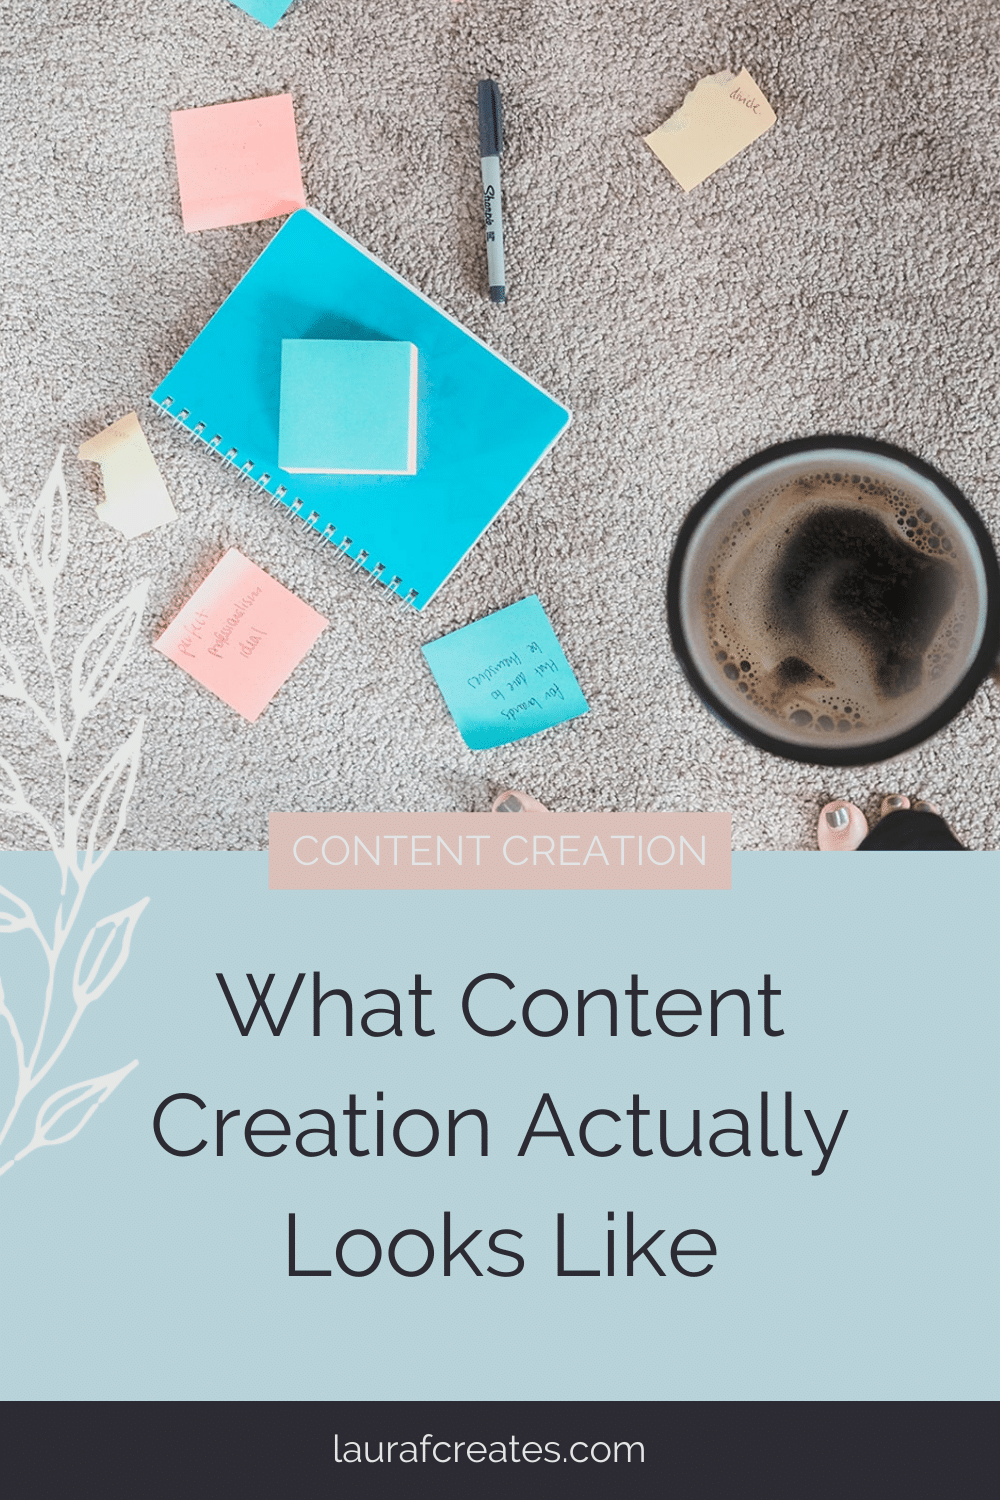 What Content Creation Actually Looks Like by Laura F Creates. This blog post includes tips for building your website, copywriting tips, websites for business. Click through to browse the blog or for more content tips